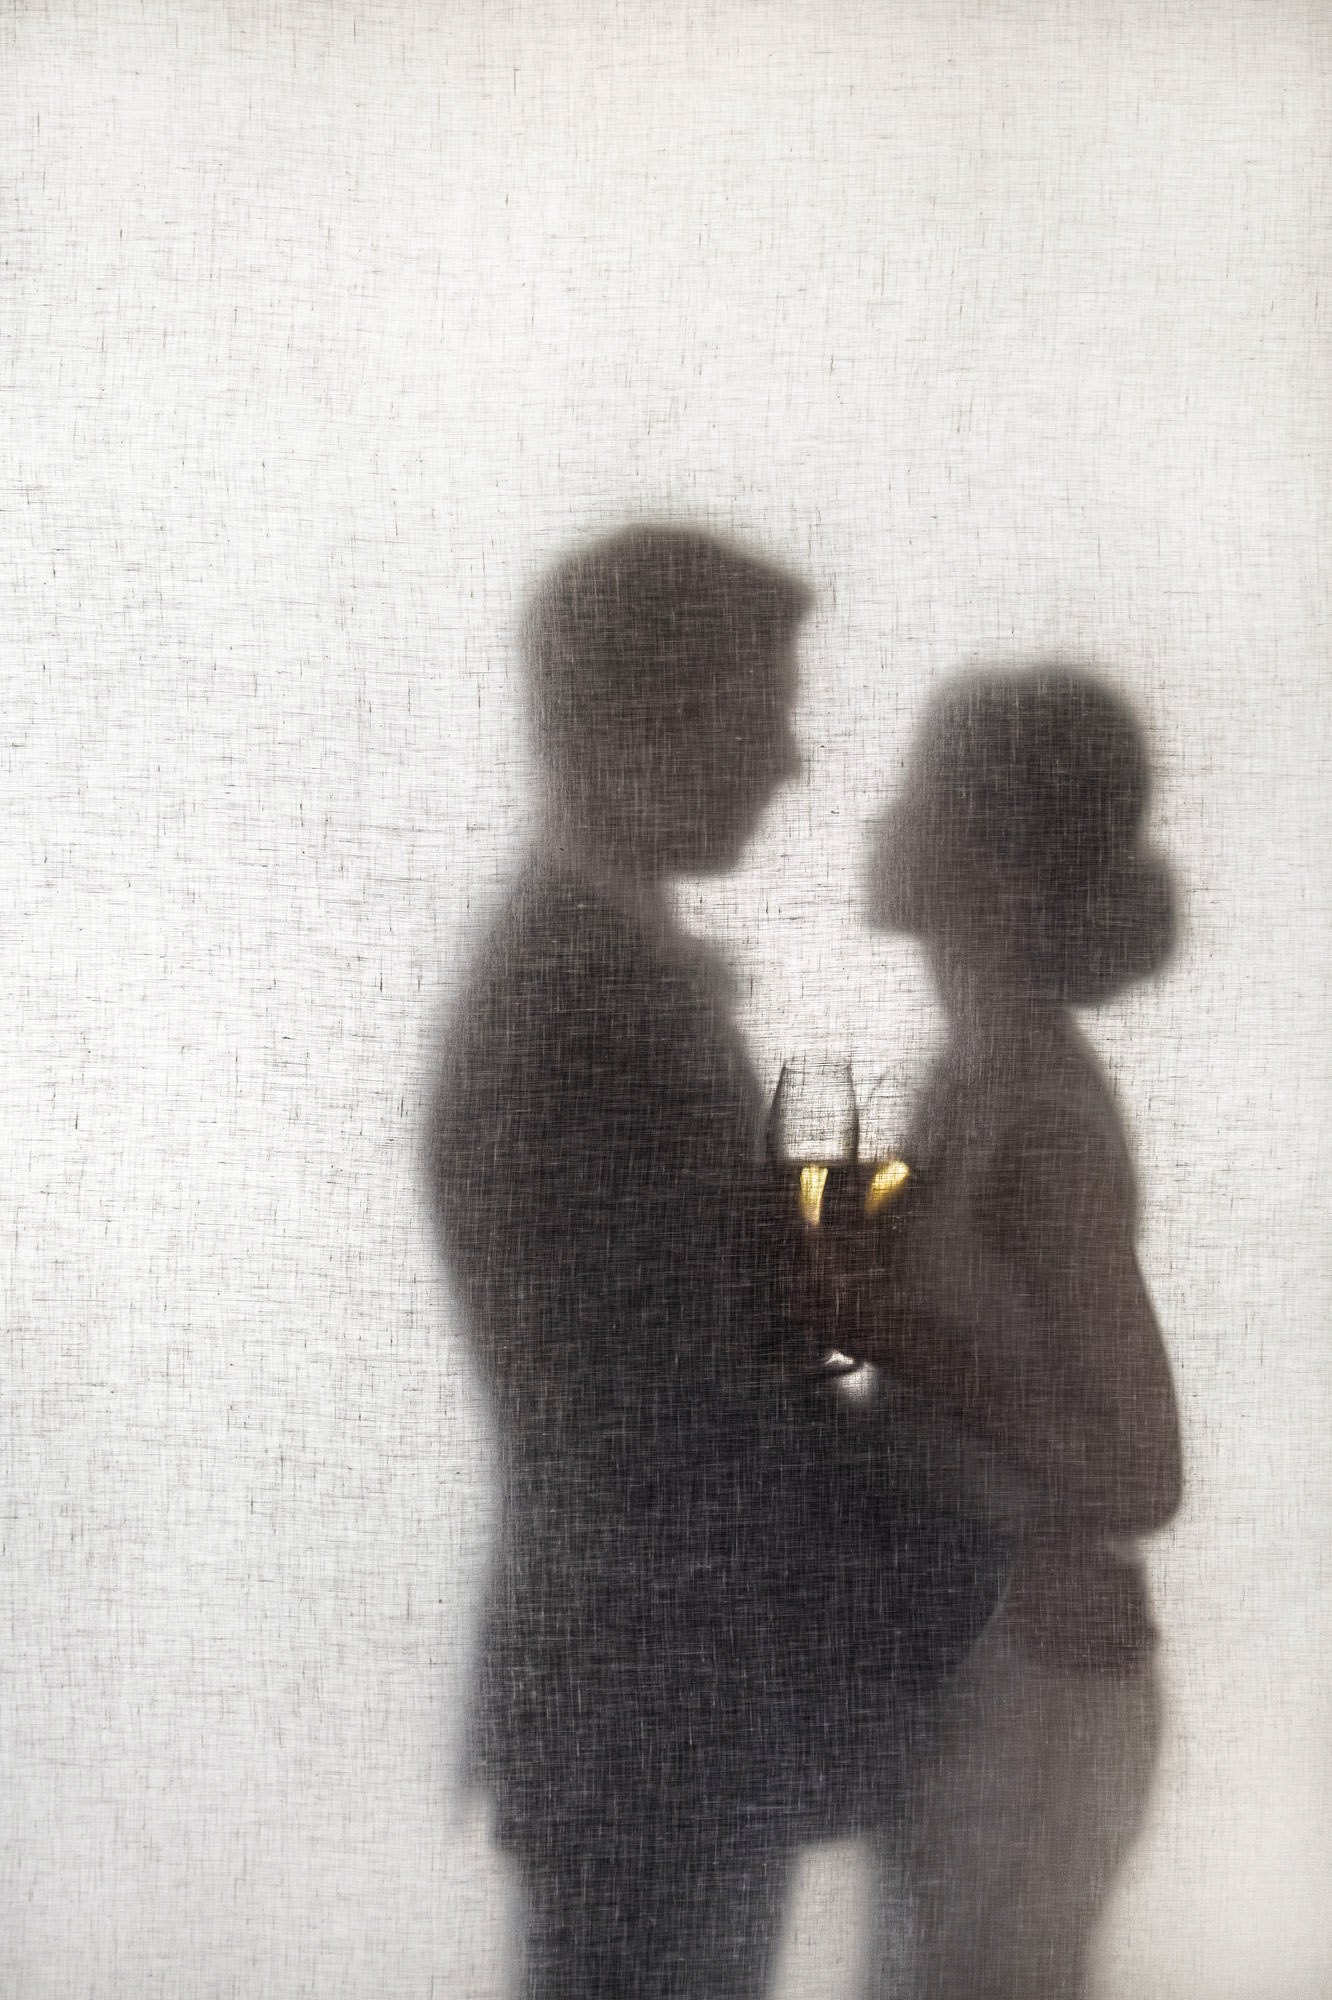 Couple's profiles with champagne  through silk - photo by Jerry Ghionis